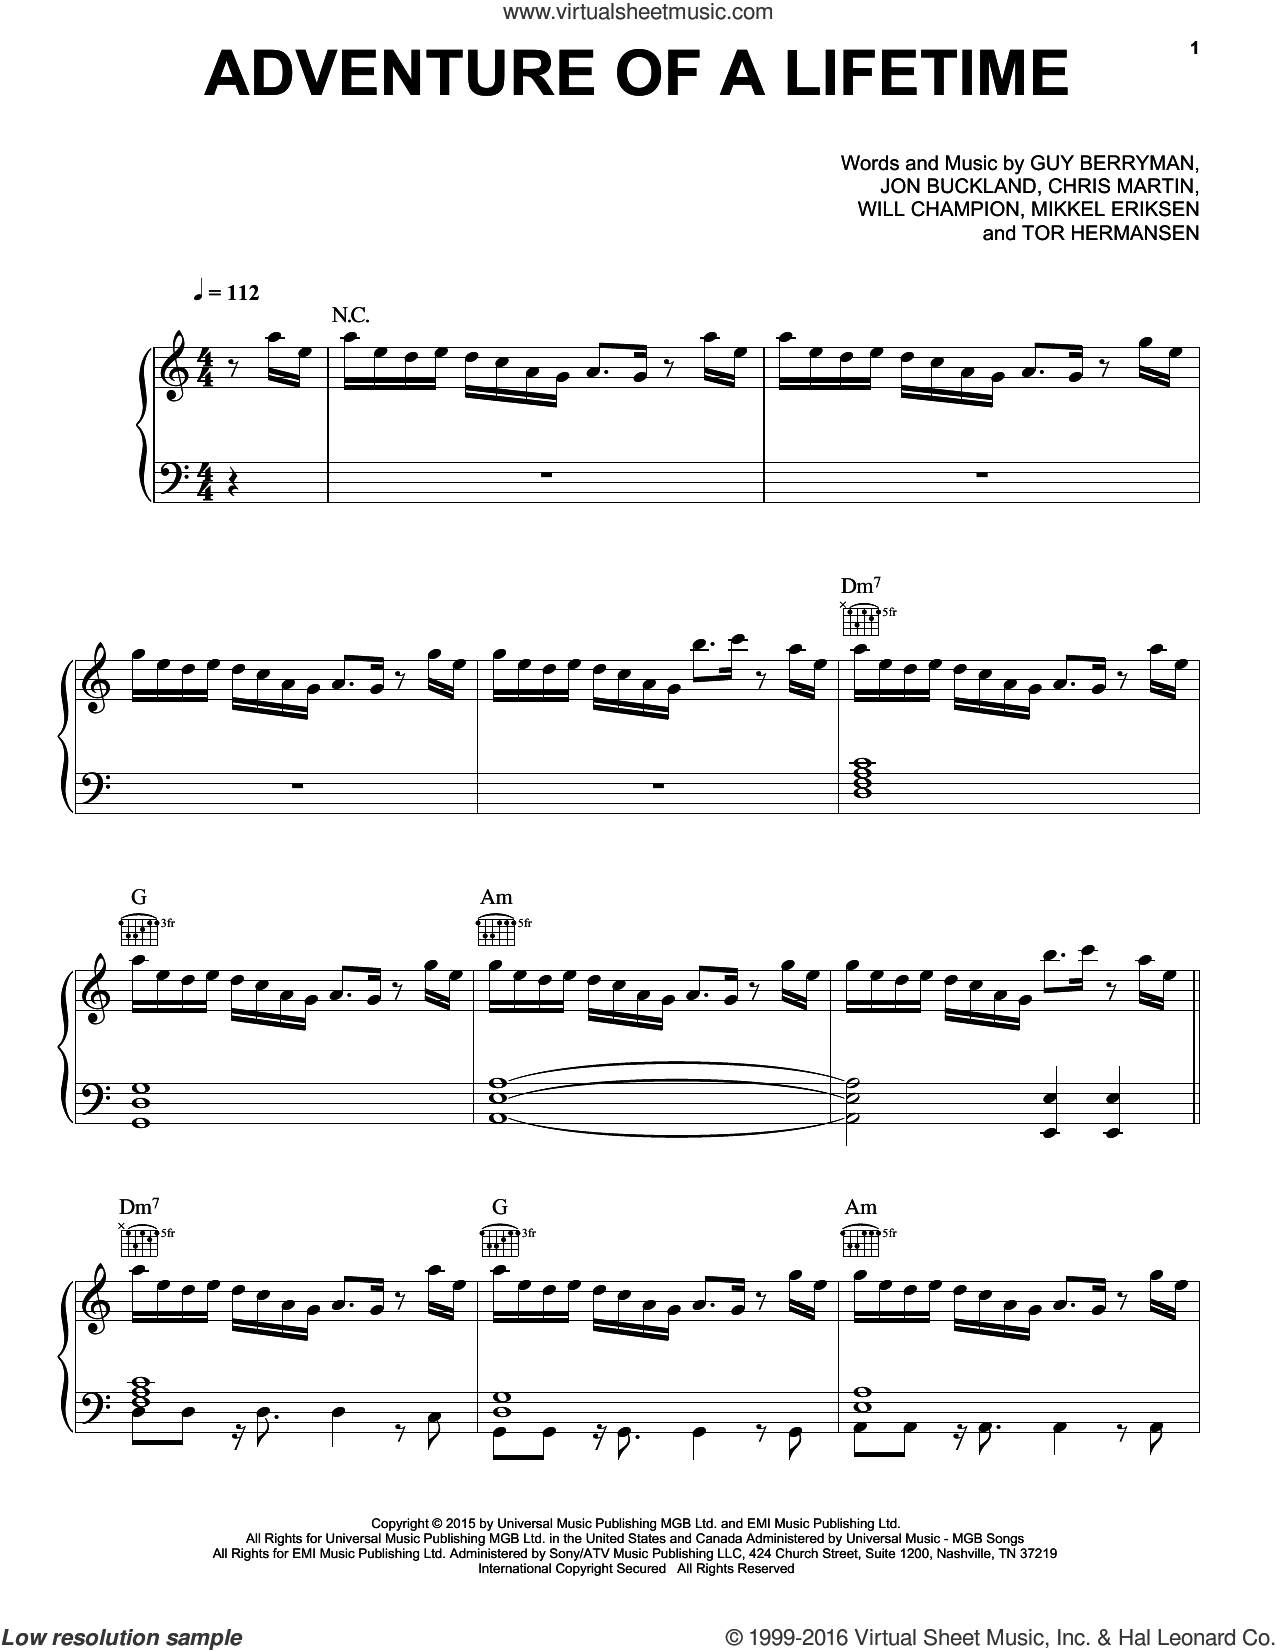 Adventure Of A Lifetime sheet music for voice, piano or guitar by Chris Martin, Coldplay, Guy Berryman, Jon Buckland, Mikkel Eriksen, Tor Erik Hermansen and Will Champion, intermediate skill level